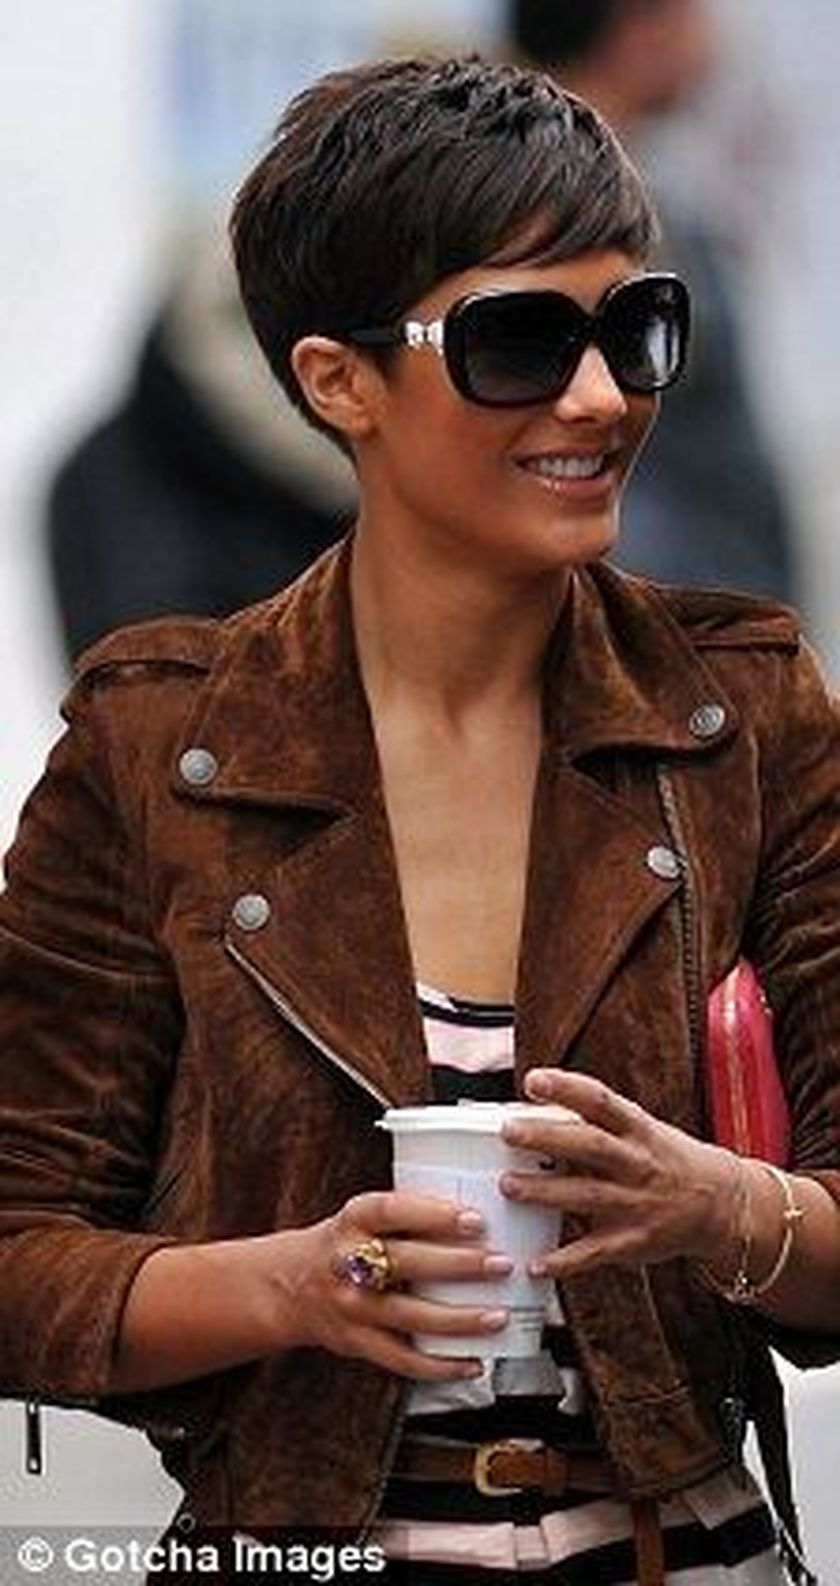 Short hair pixie cut hairstyle with glasses ideas 71